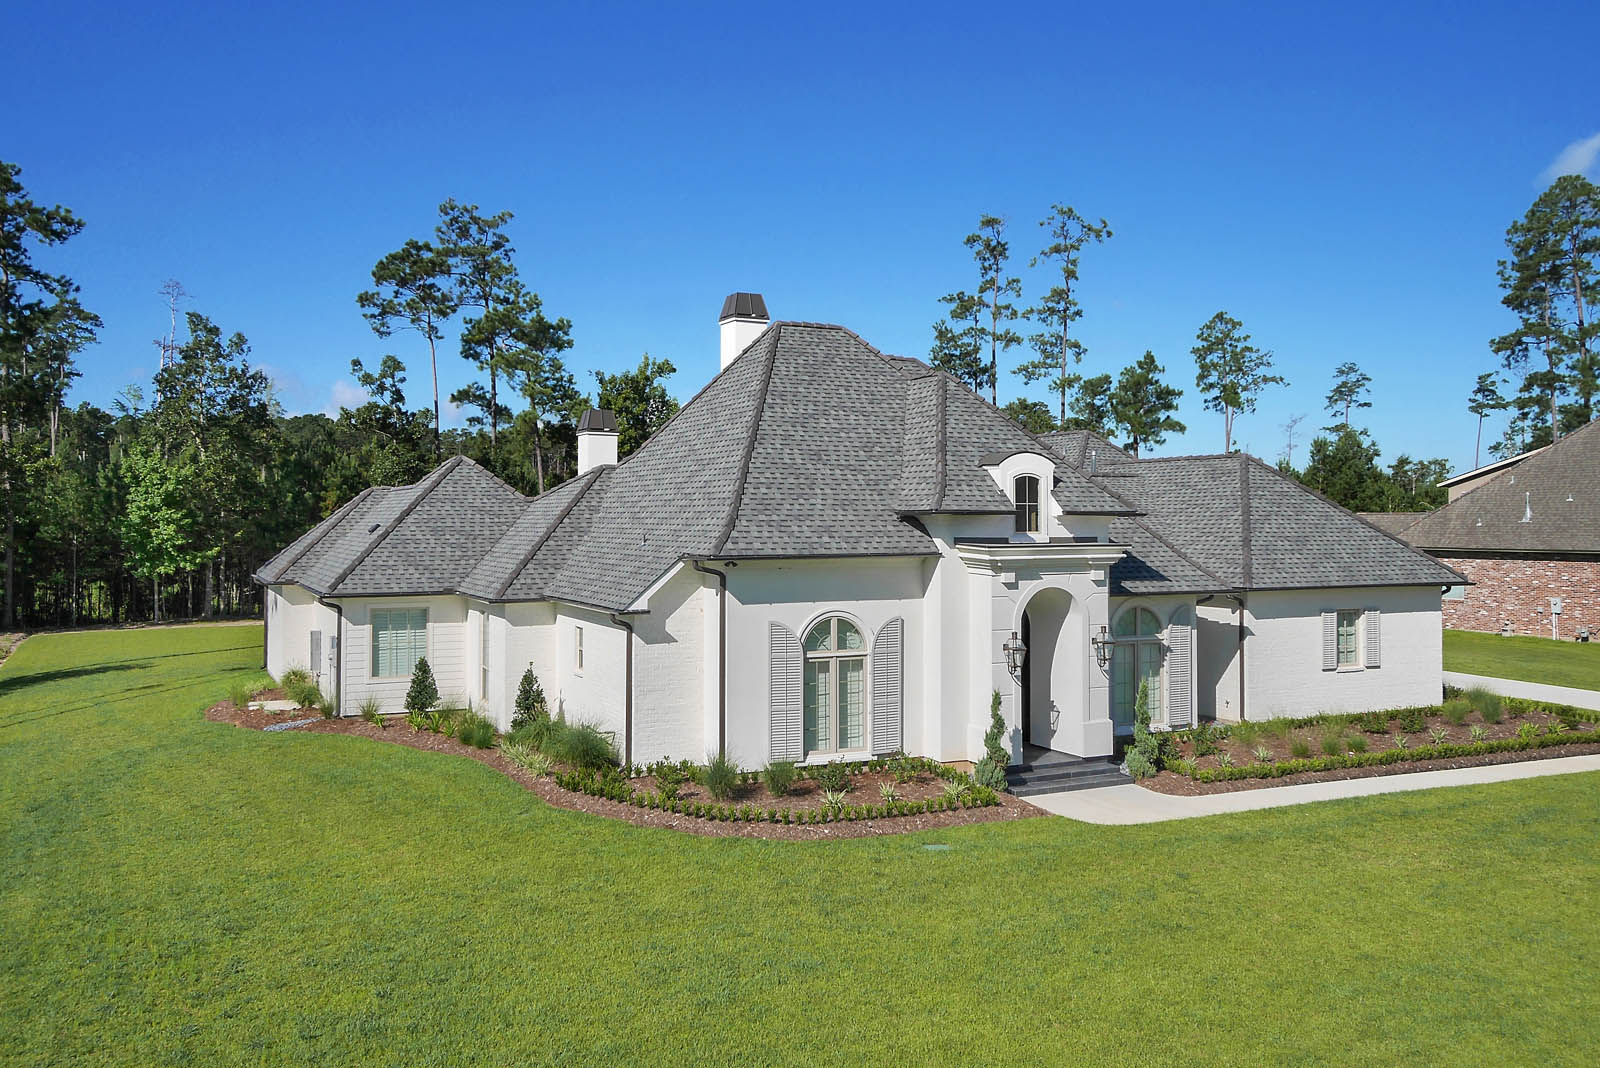 bedico-creek-fairway-j-hand-homes-exterior80964